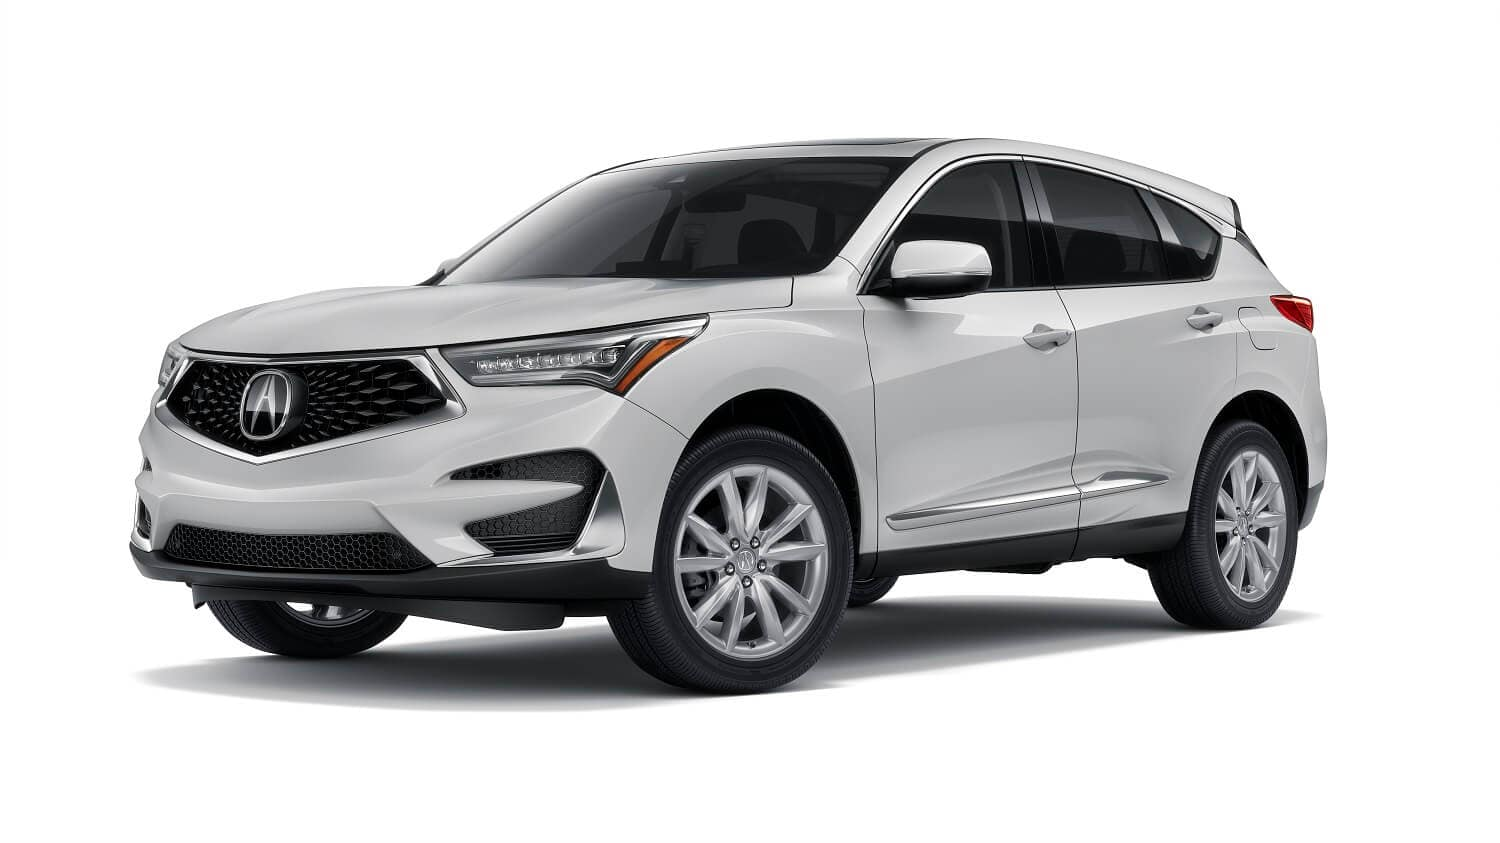 2020 Acura RDX Base in Platinum White Pearl